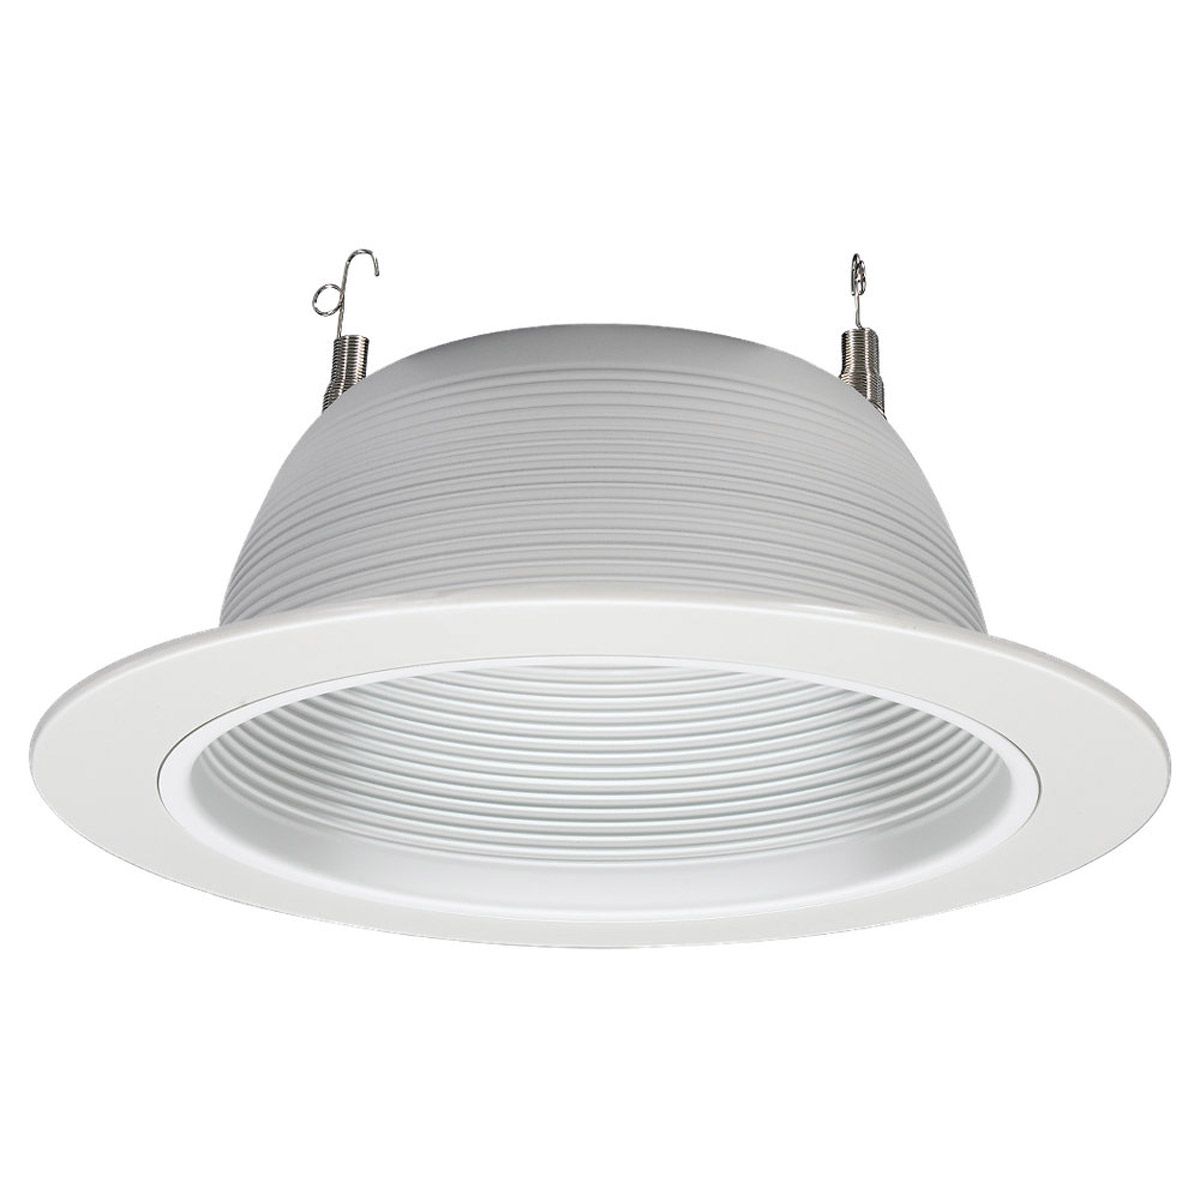 Sea Gull Lighting Signature Recessed Trim Only in White 1126-14